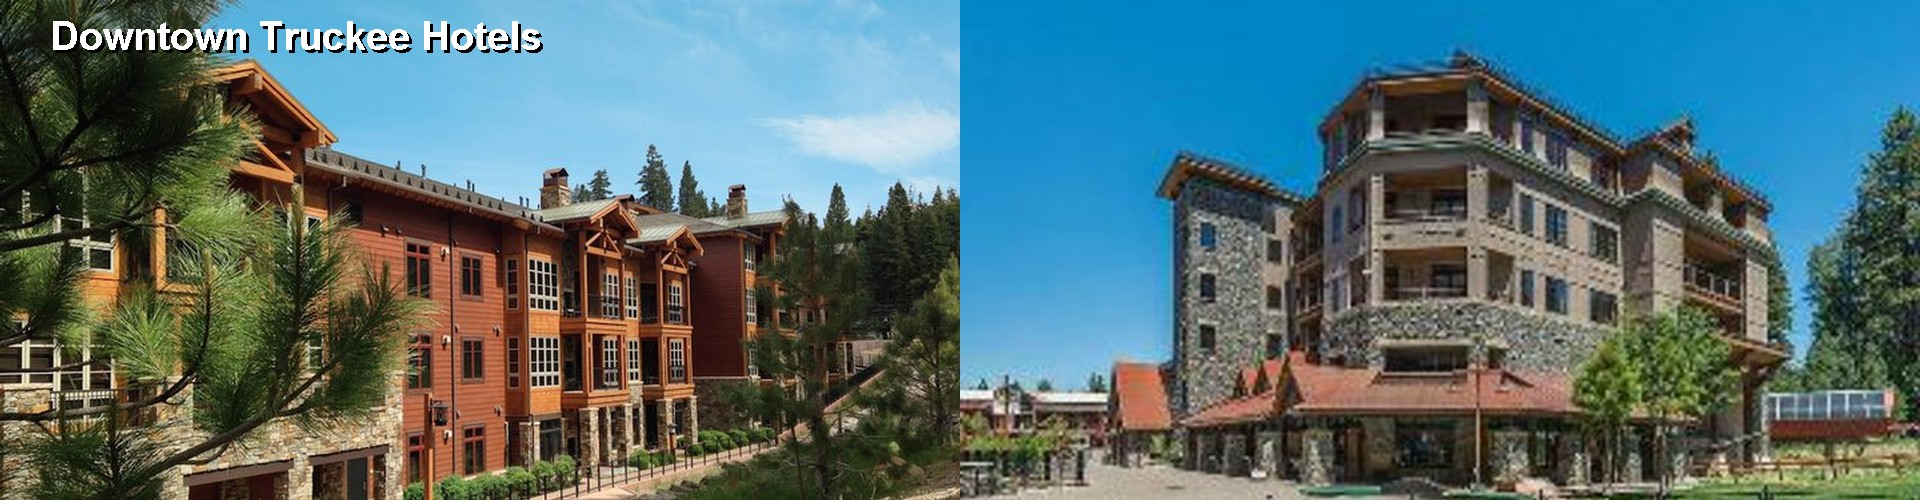 5 Best Hotels near Downtown Truckee